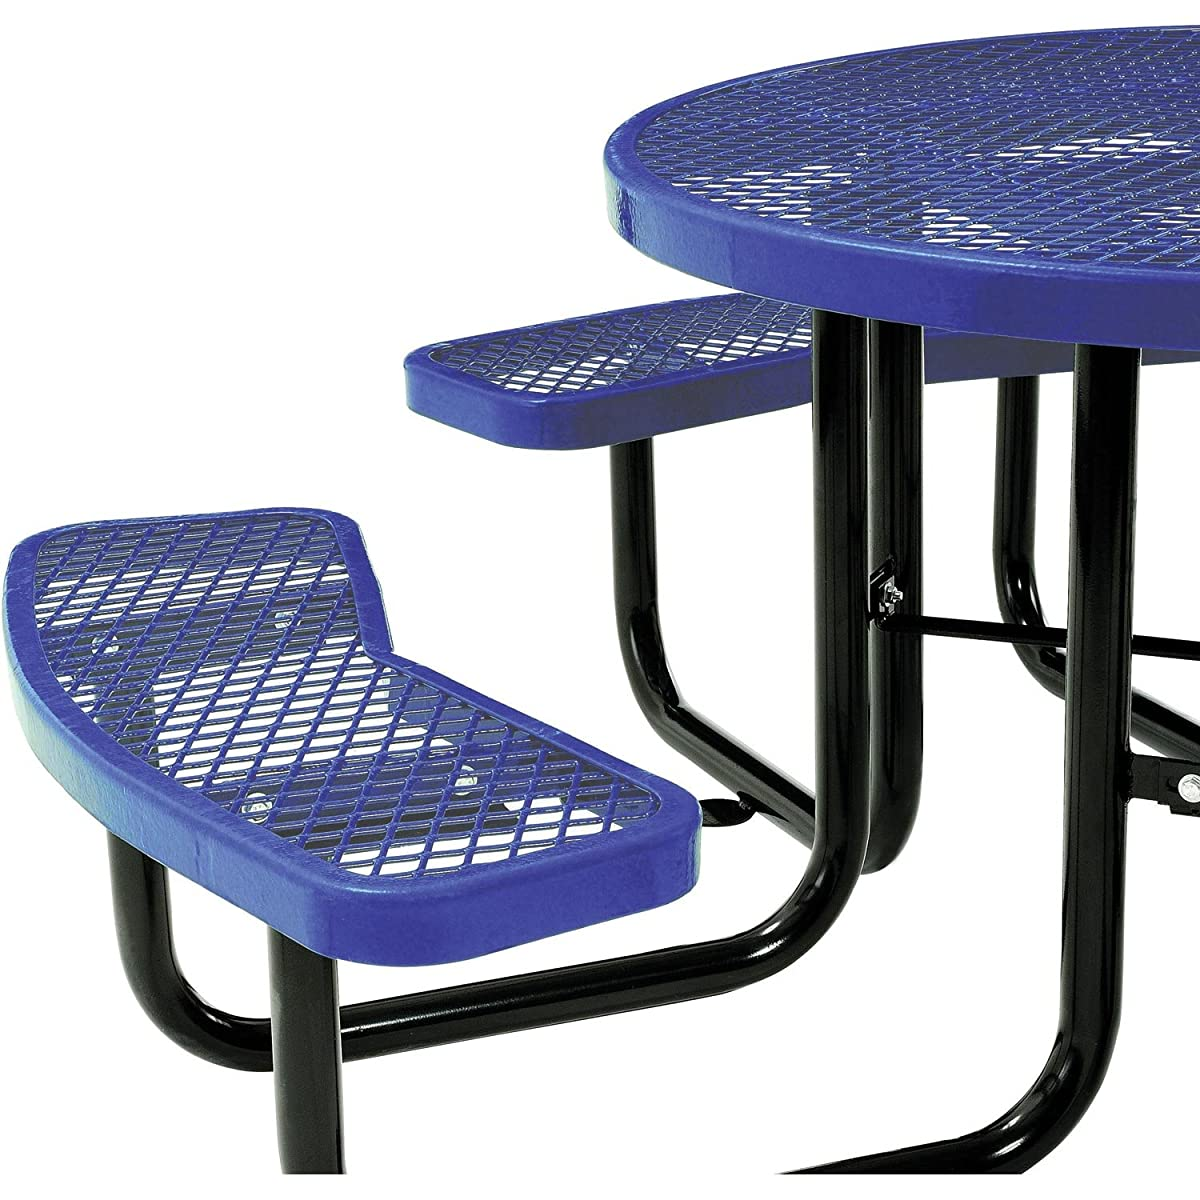 "Global Thermoplastic Coated Expanded Metal Picnic Table - 46"" Diameter - Blue - Blue"